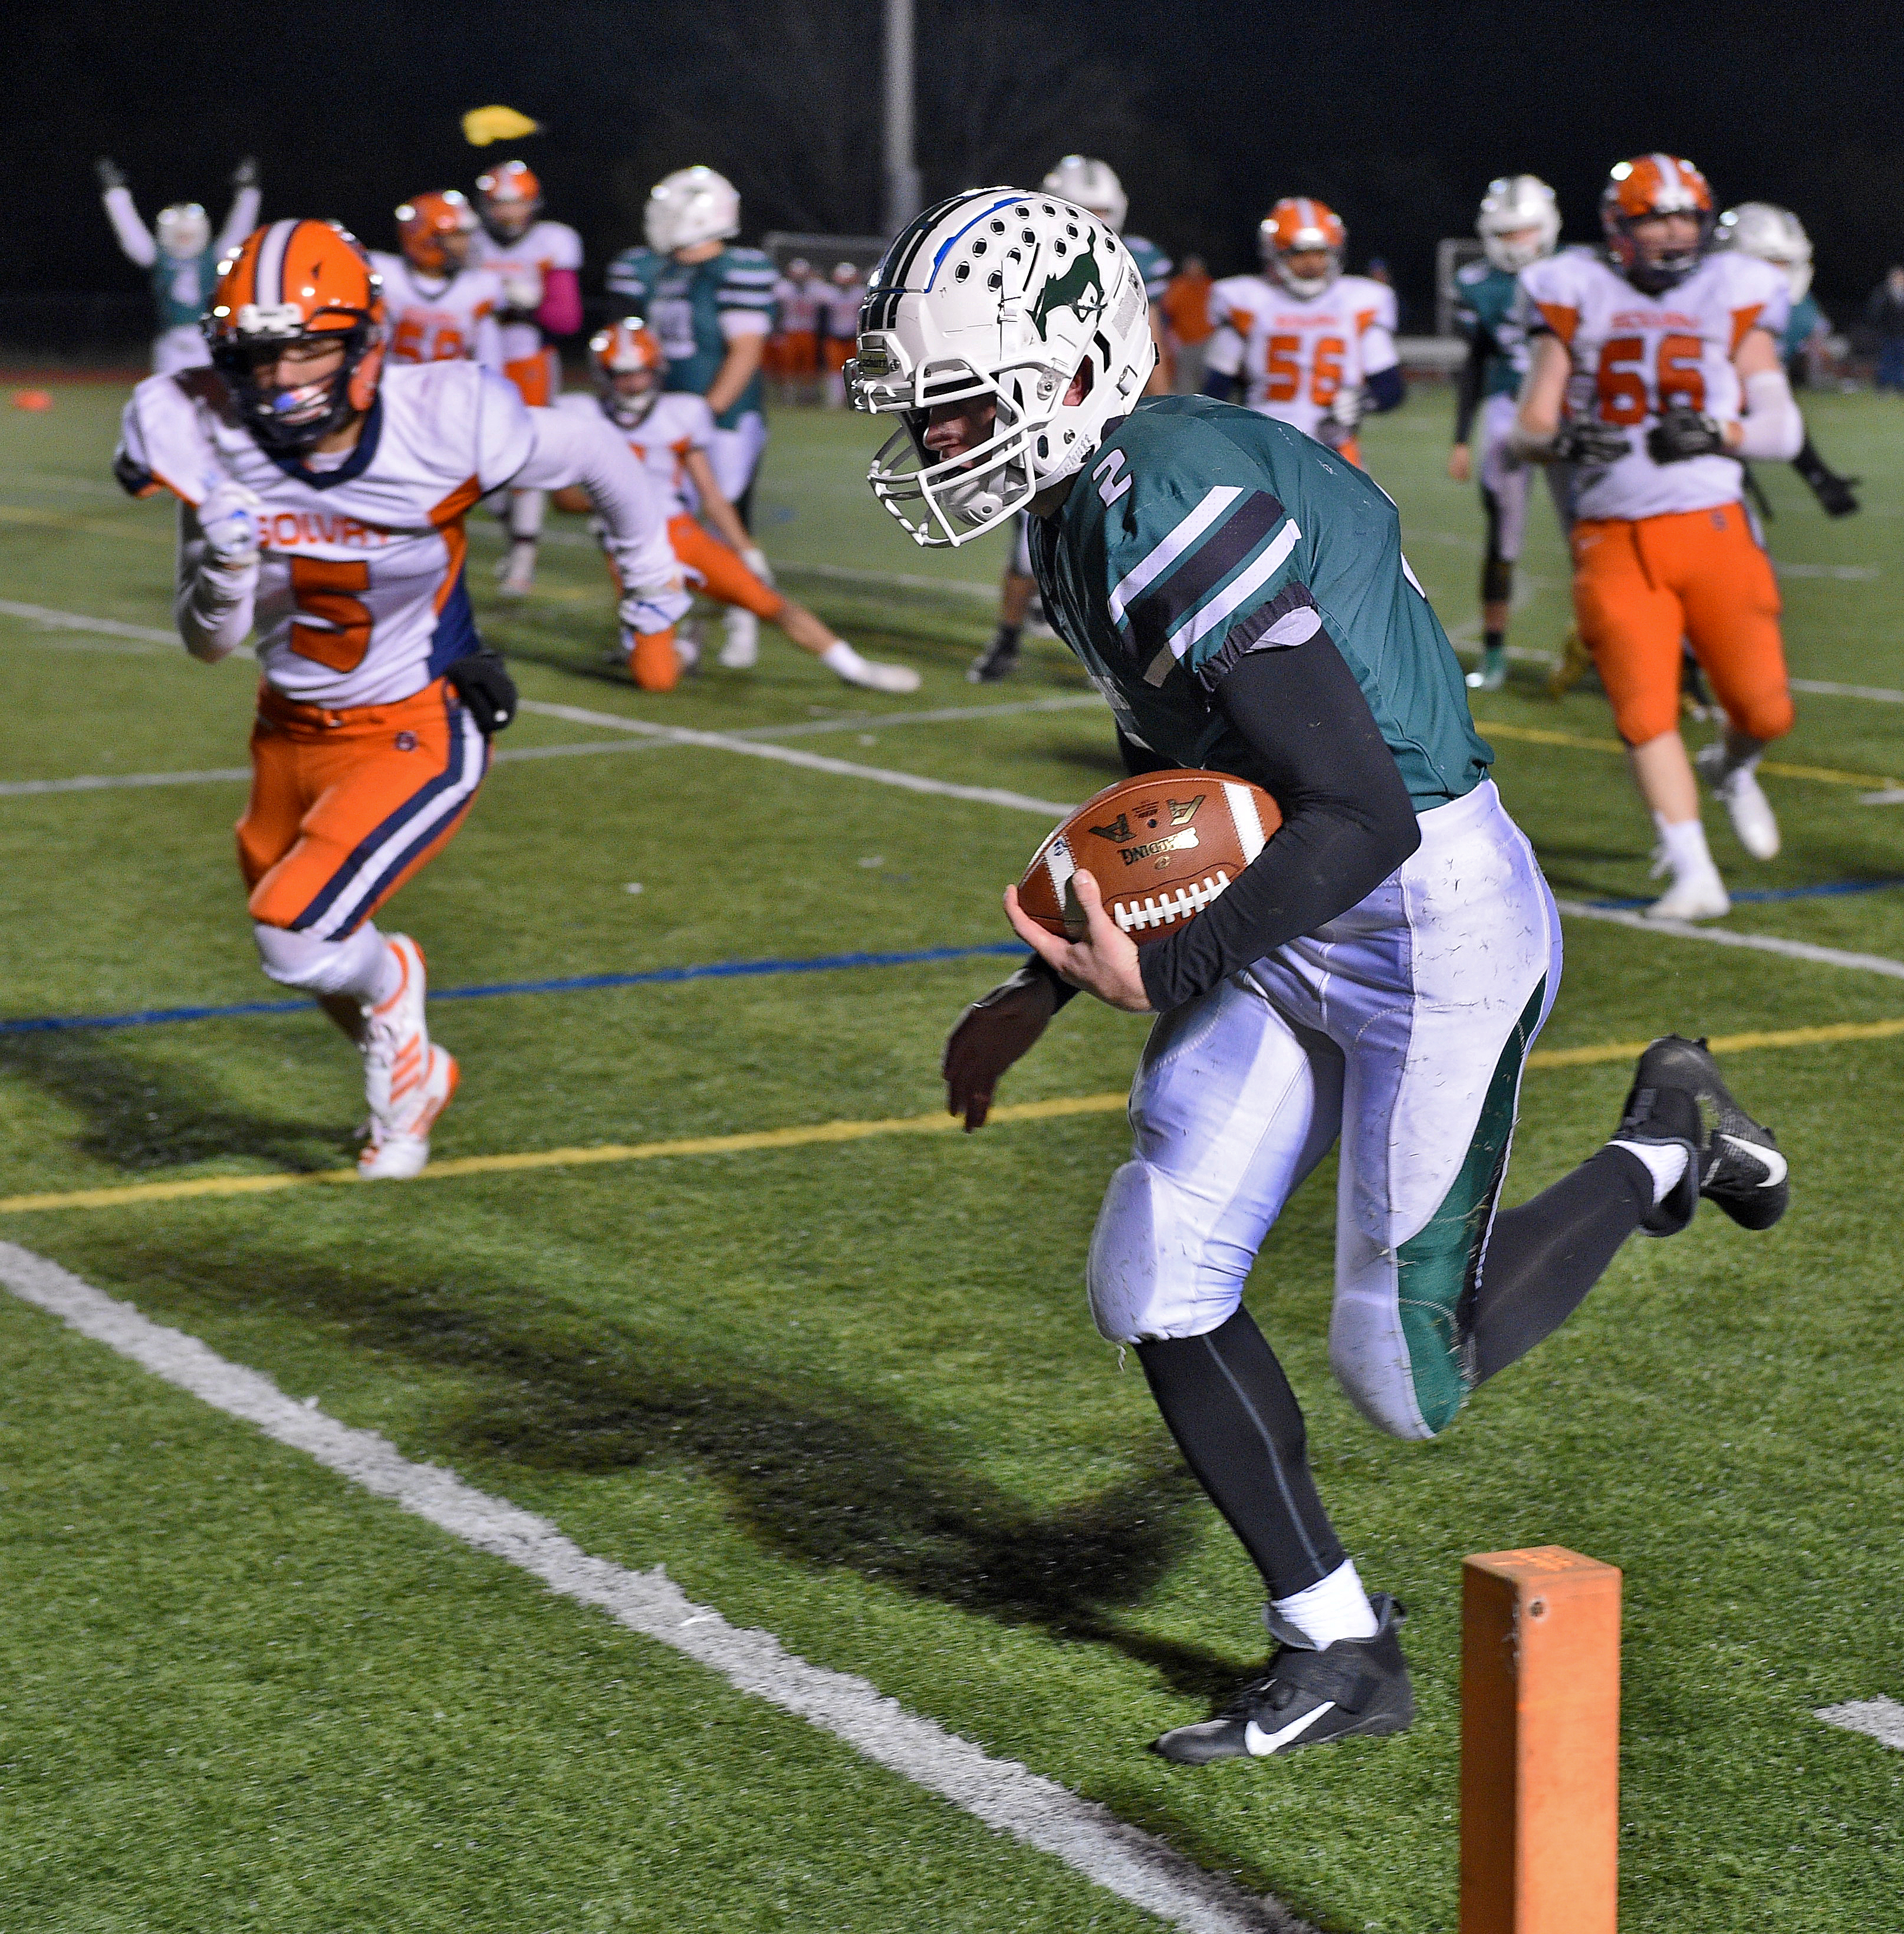 Sean Tierney's late TD gives Marcellus win